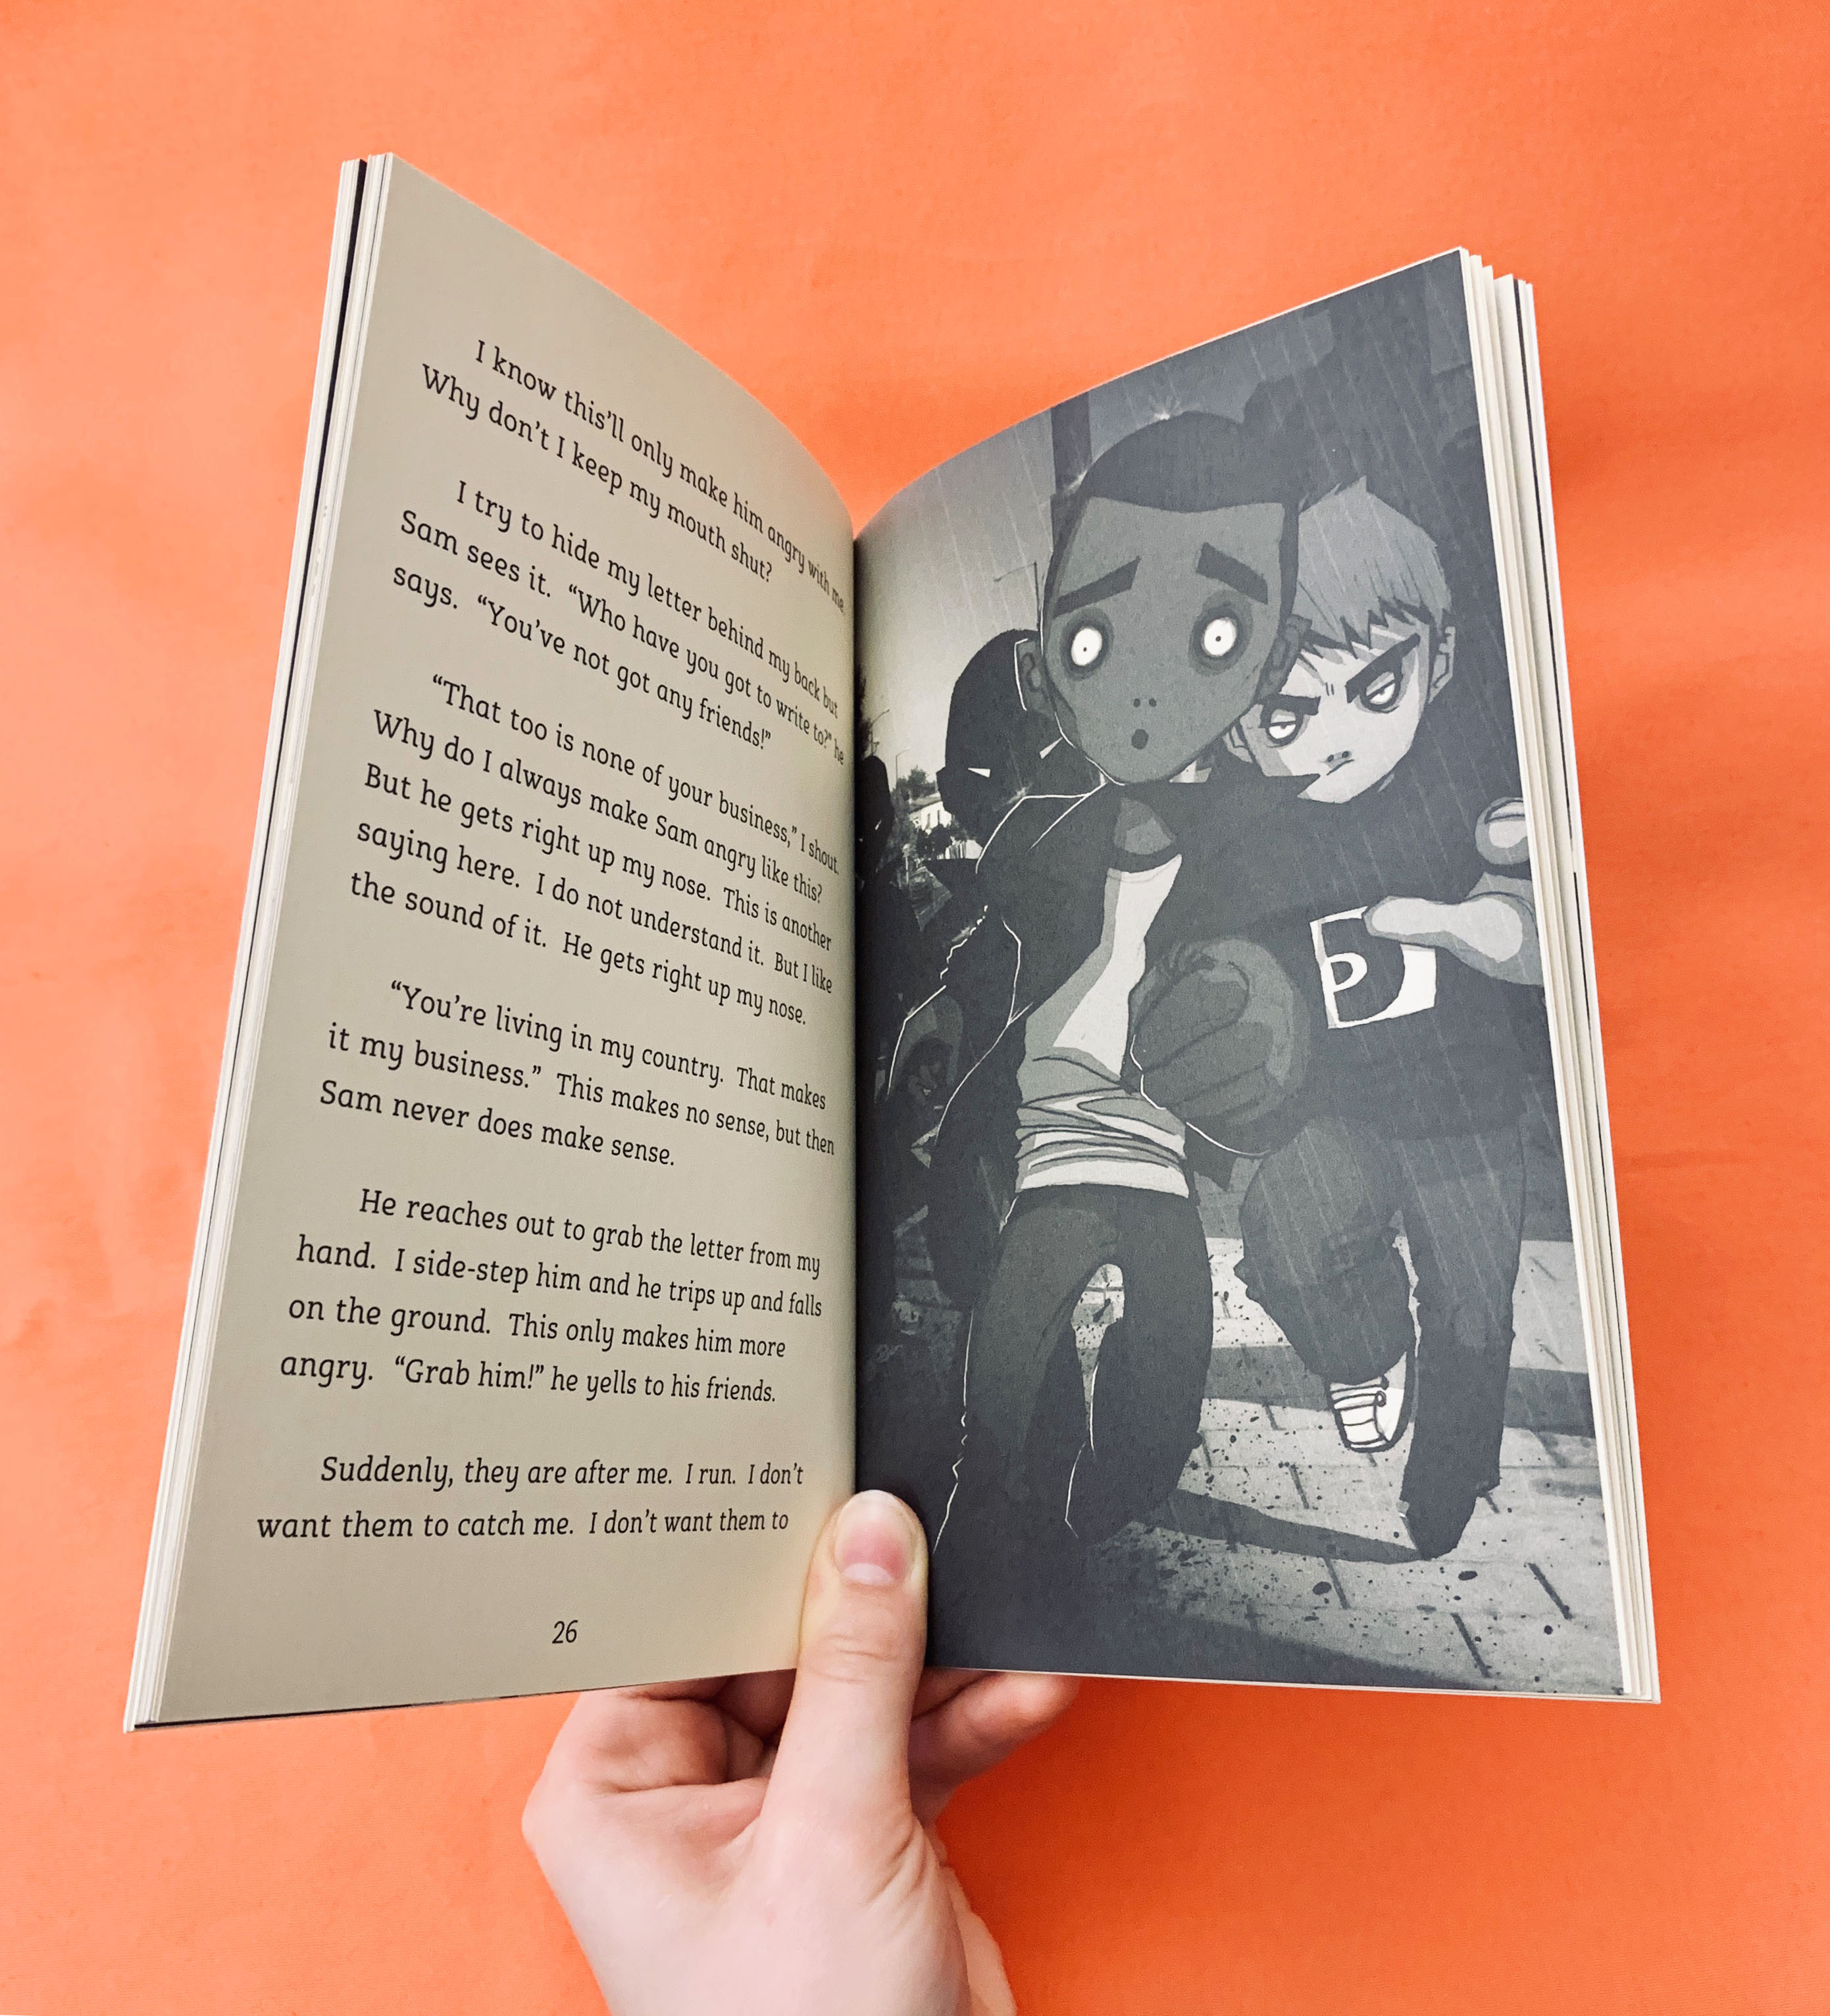 An image of the book Under the Skin opened at a page with an illustration of Omar running away from bullies